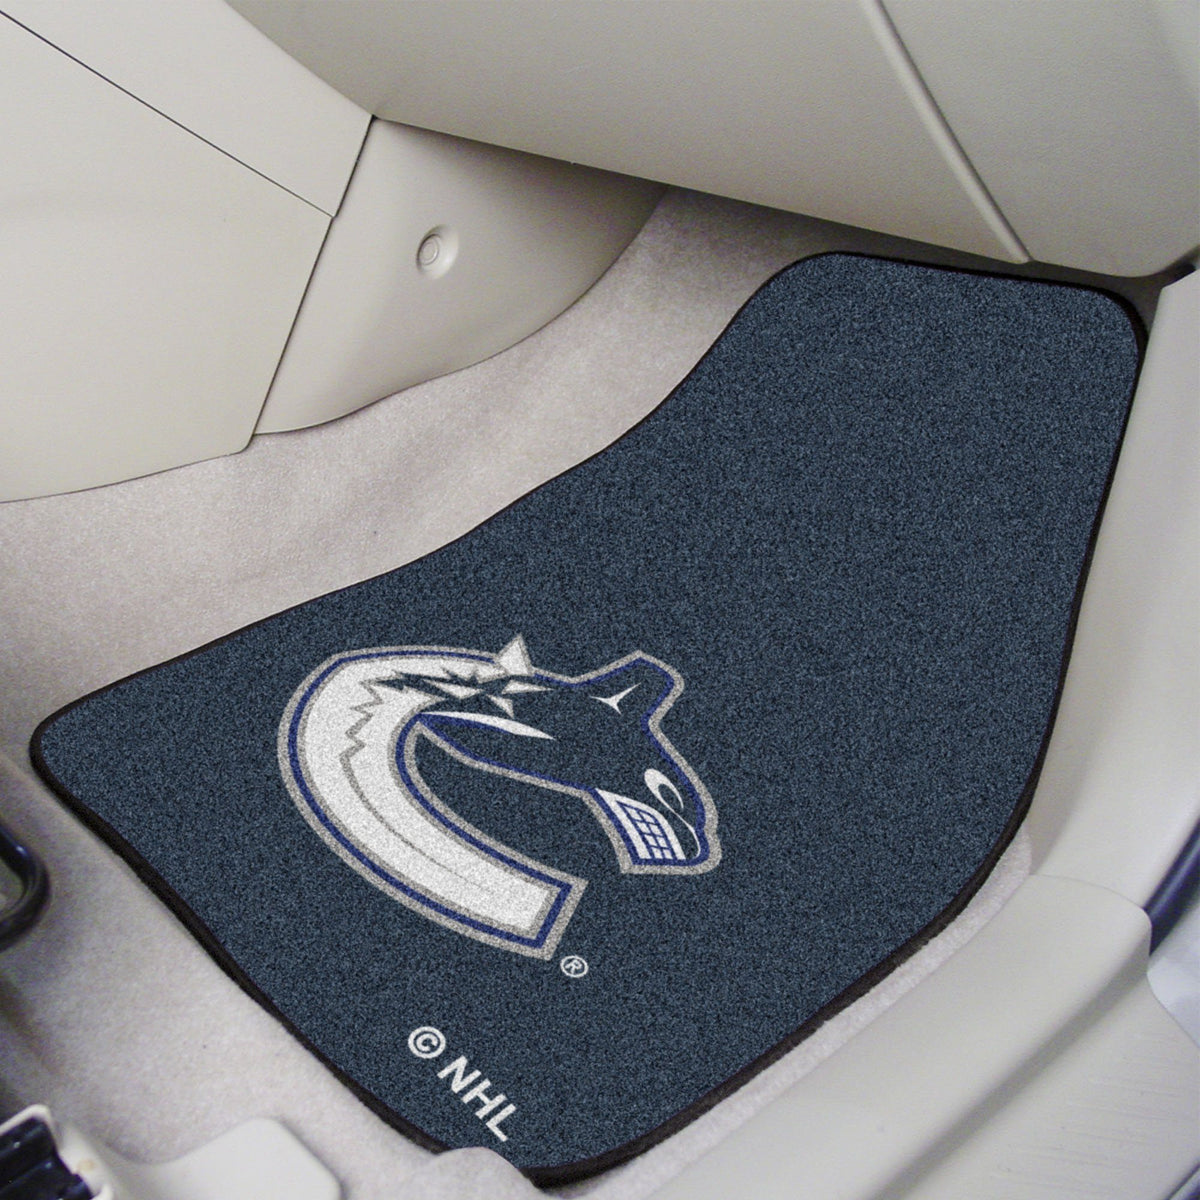 NHL - Carpet Car Mat, 2-Piece Set NHL Mats, Front Car Mats, 2-pc Carpet Car Mat Set, NHL, Auto Fan Mats Vancouver Canucks